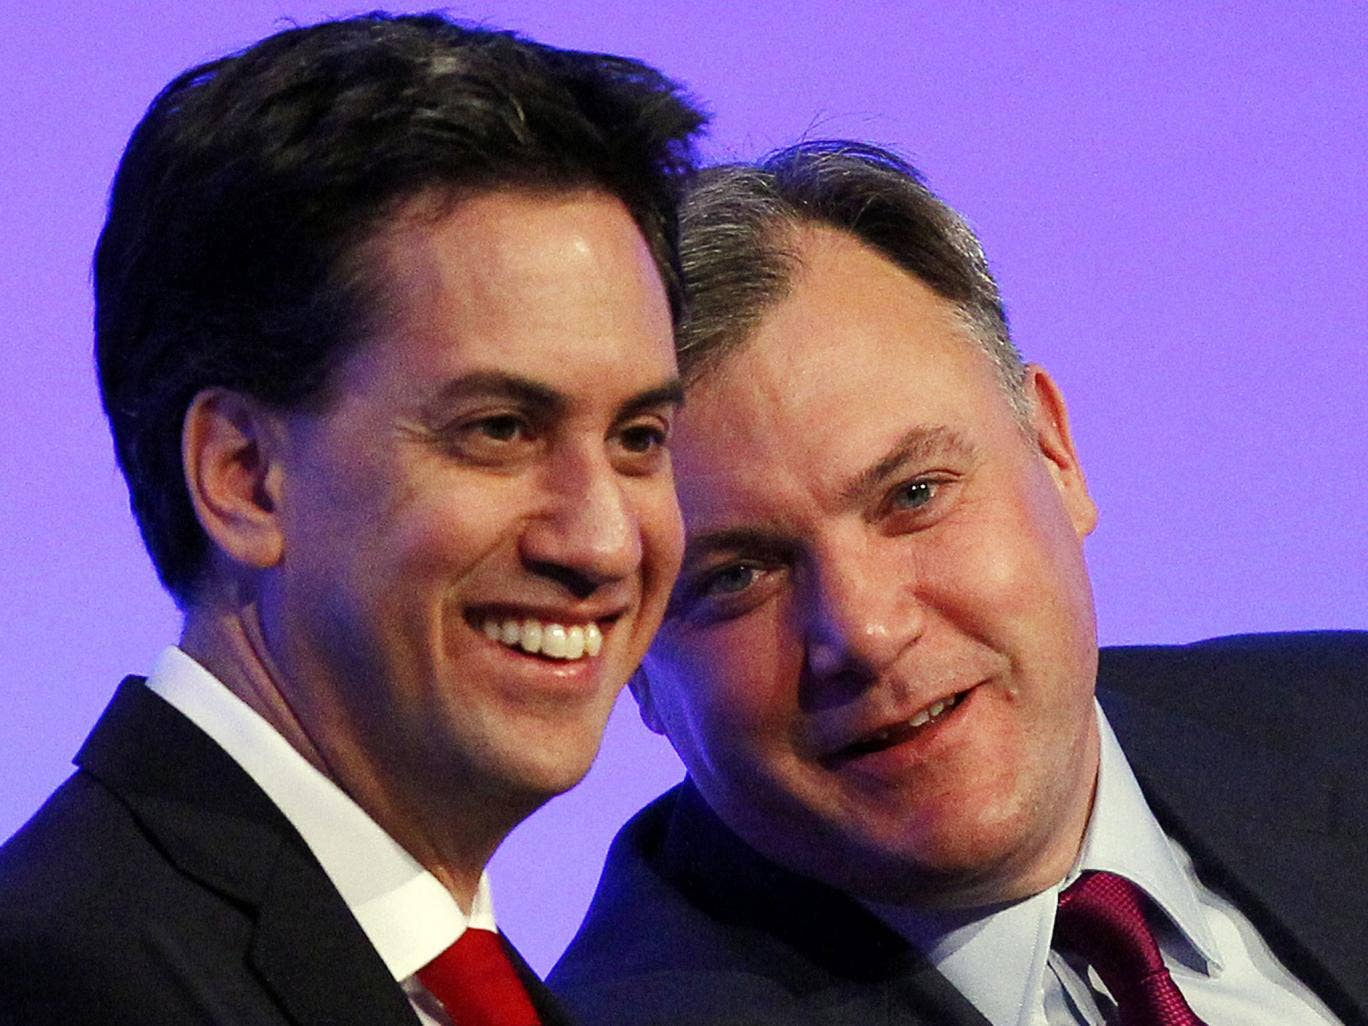 Leading labour MPs Ed Miliband and Ed Balls will reject Tony Blair's more cautious approach to government spending and pledge to outspend the Conservatives